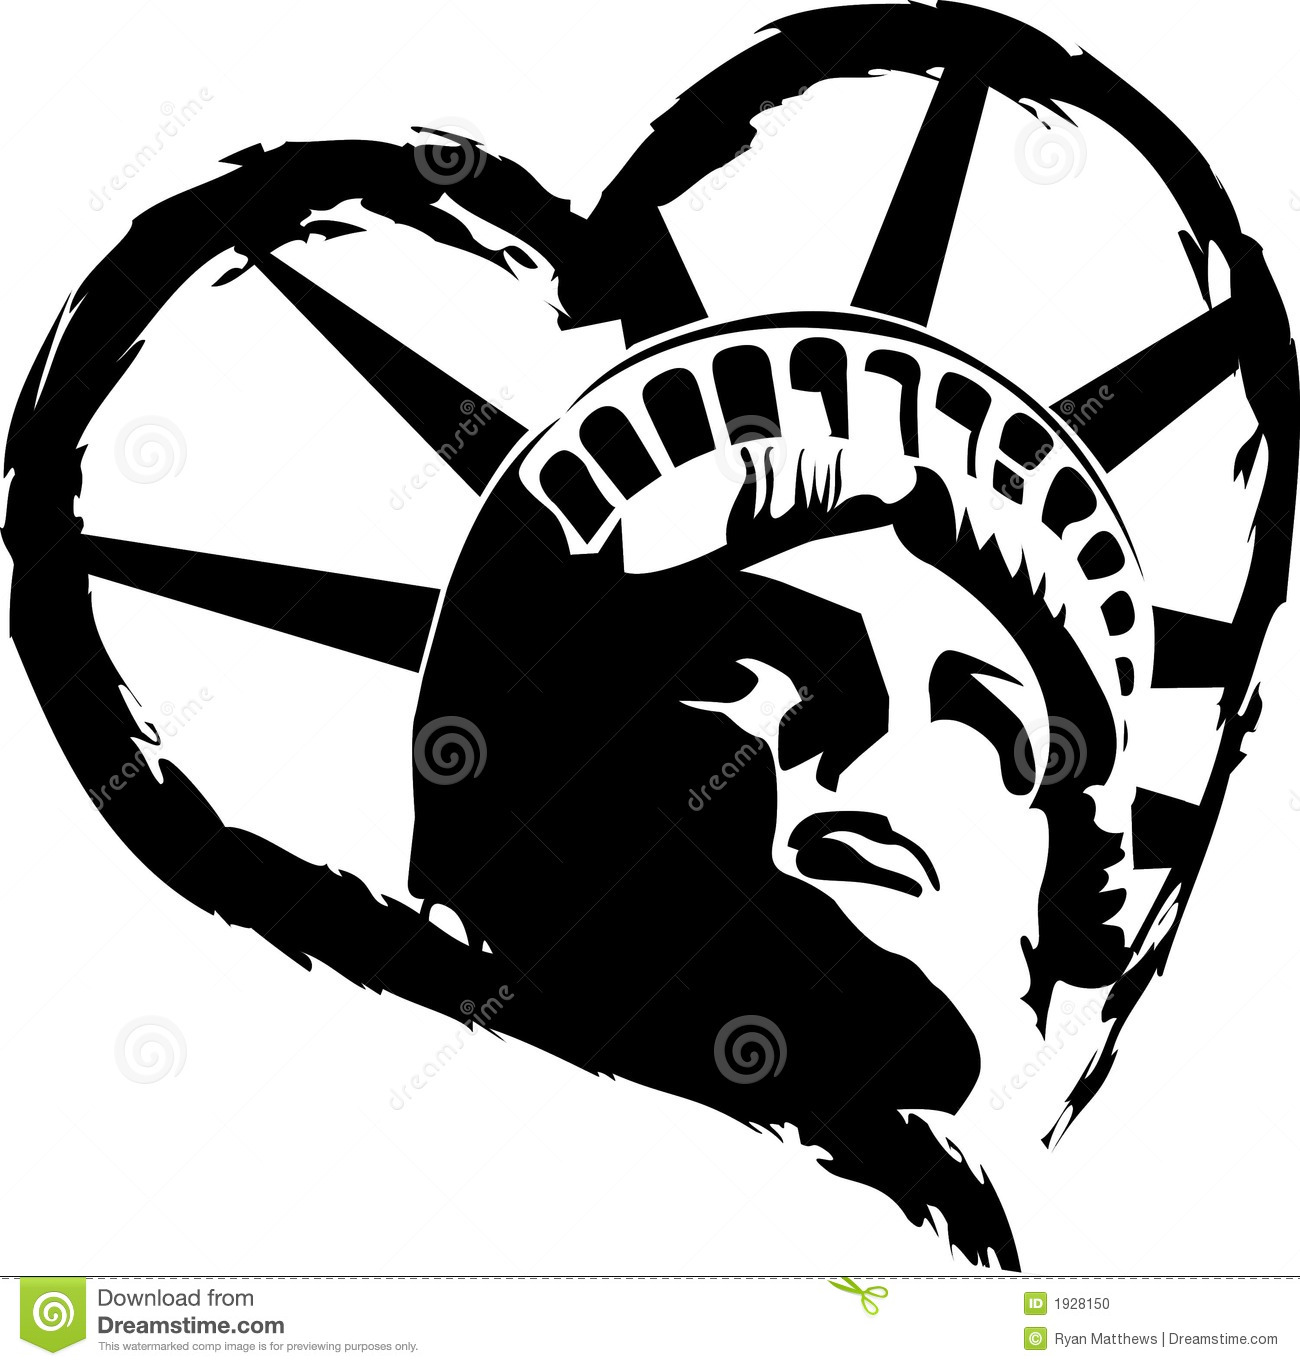 Statue Of Liberty Heart Stock Photo - Image: 1928150